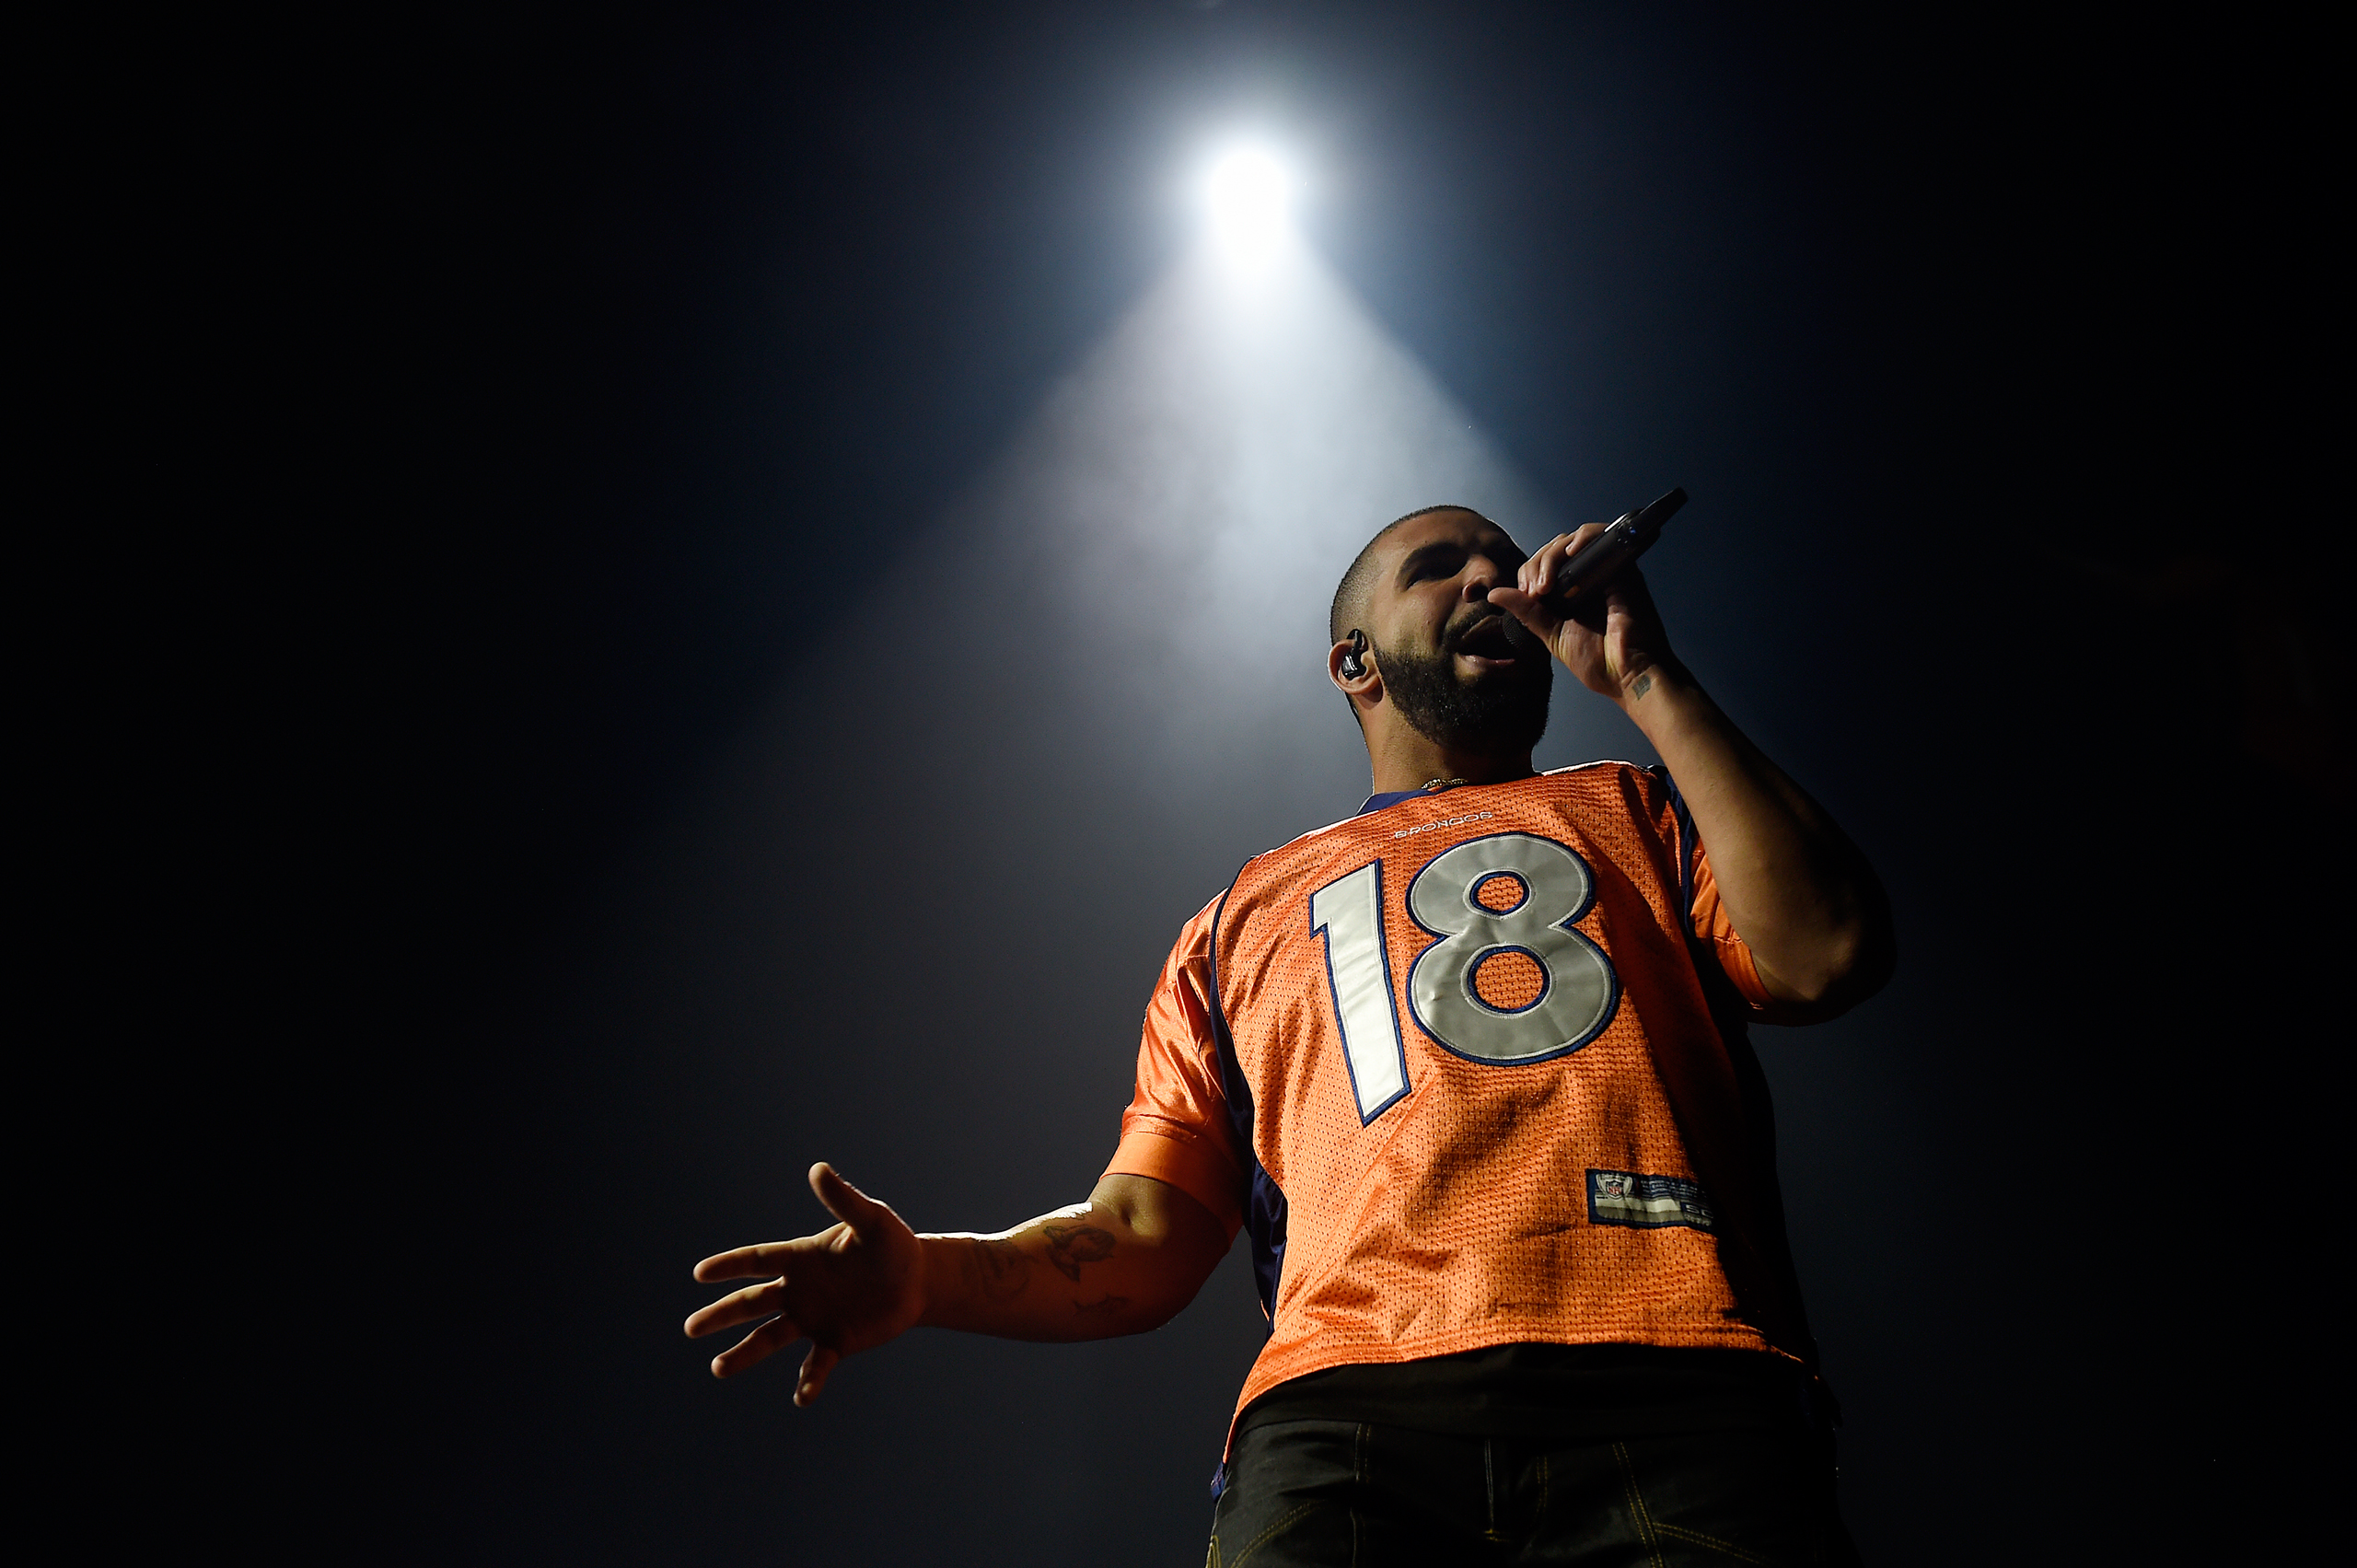 Drake performs at the Pepsi Center in Denver on Oct. 2, 2016.